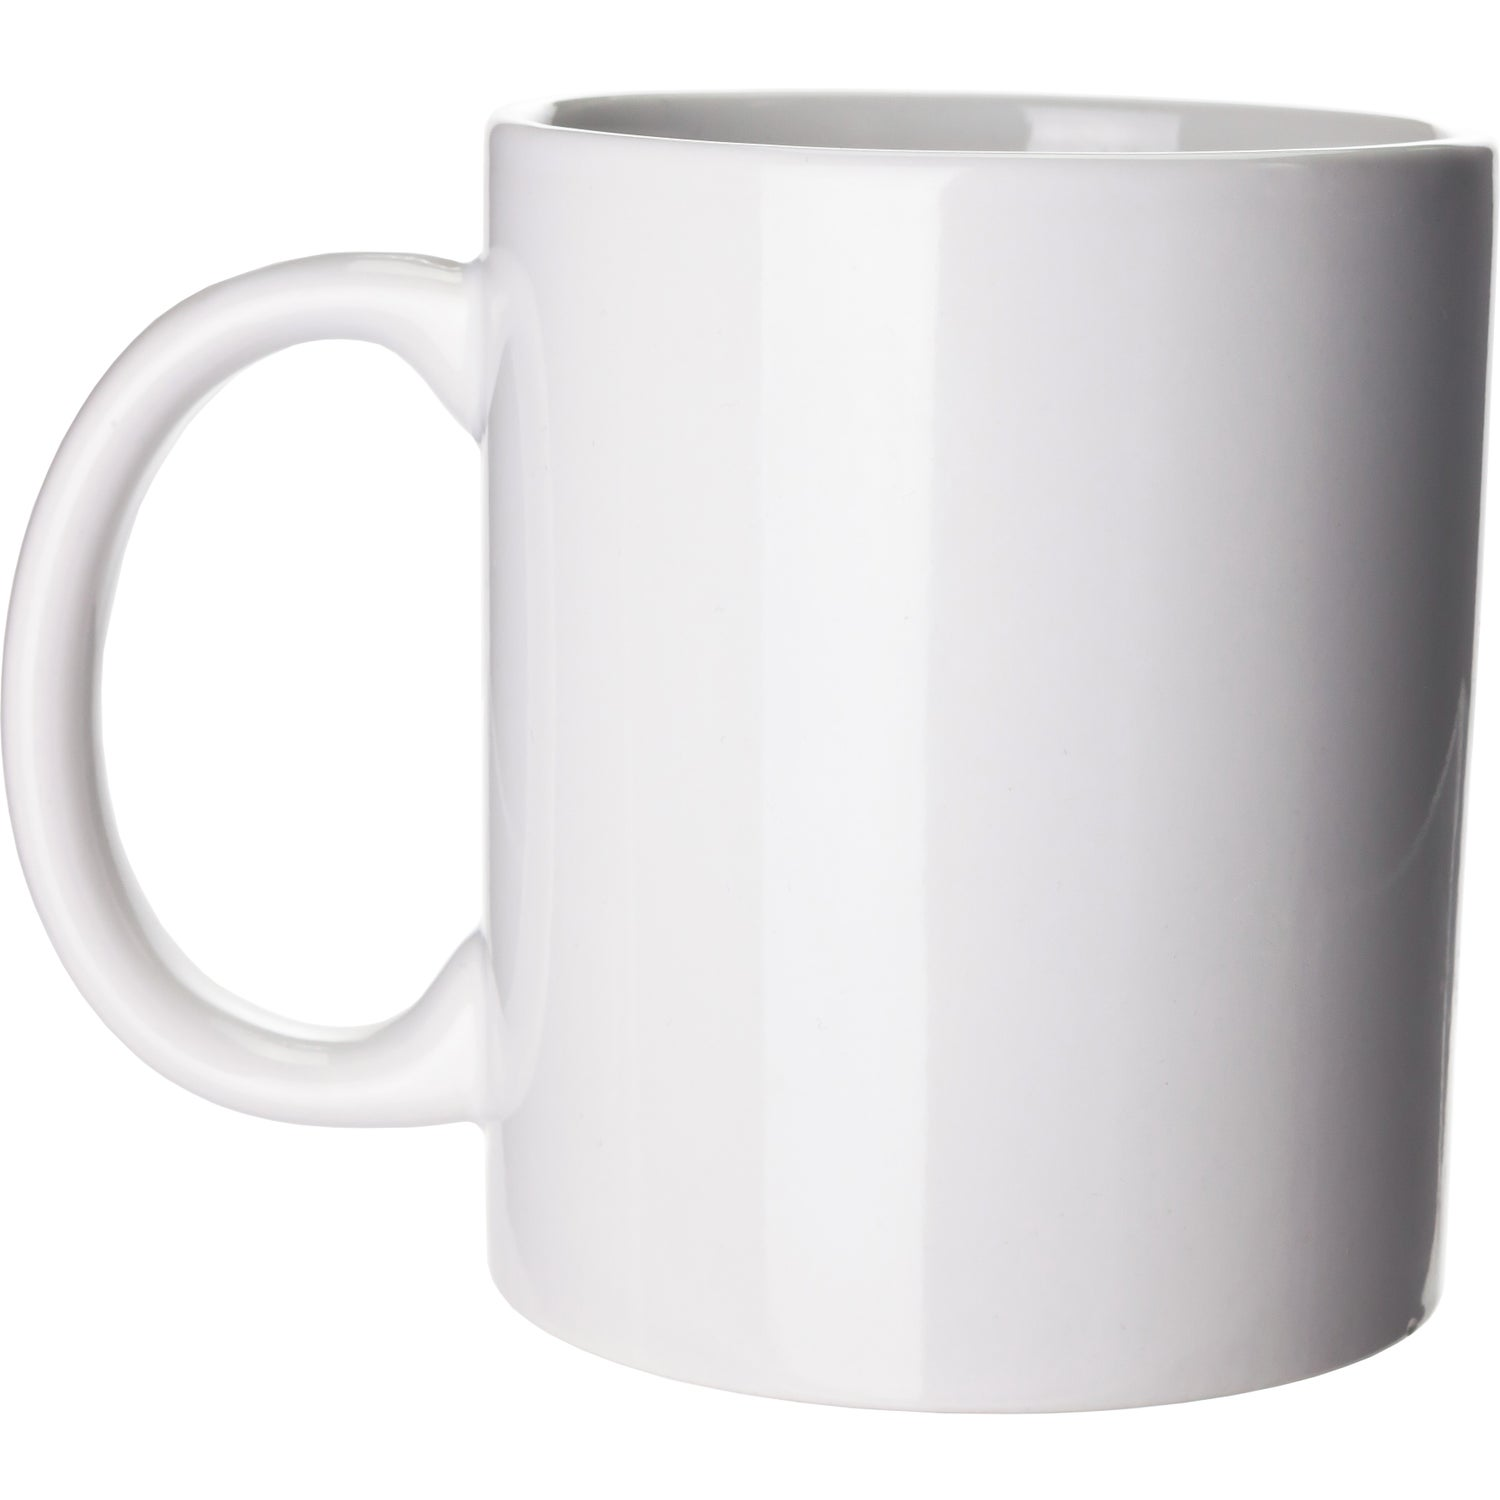 dfc818d8ccb CLICK HERE to Order 11 Oz. Budget Coffee Mugs Printed with Your Logo for  $1.10 Ea.